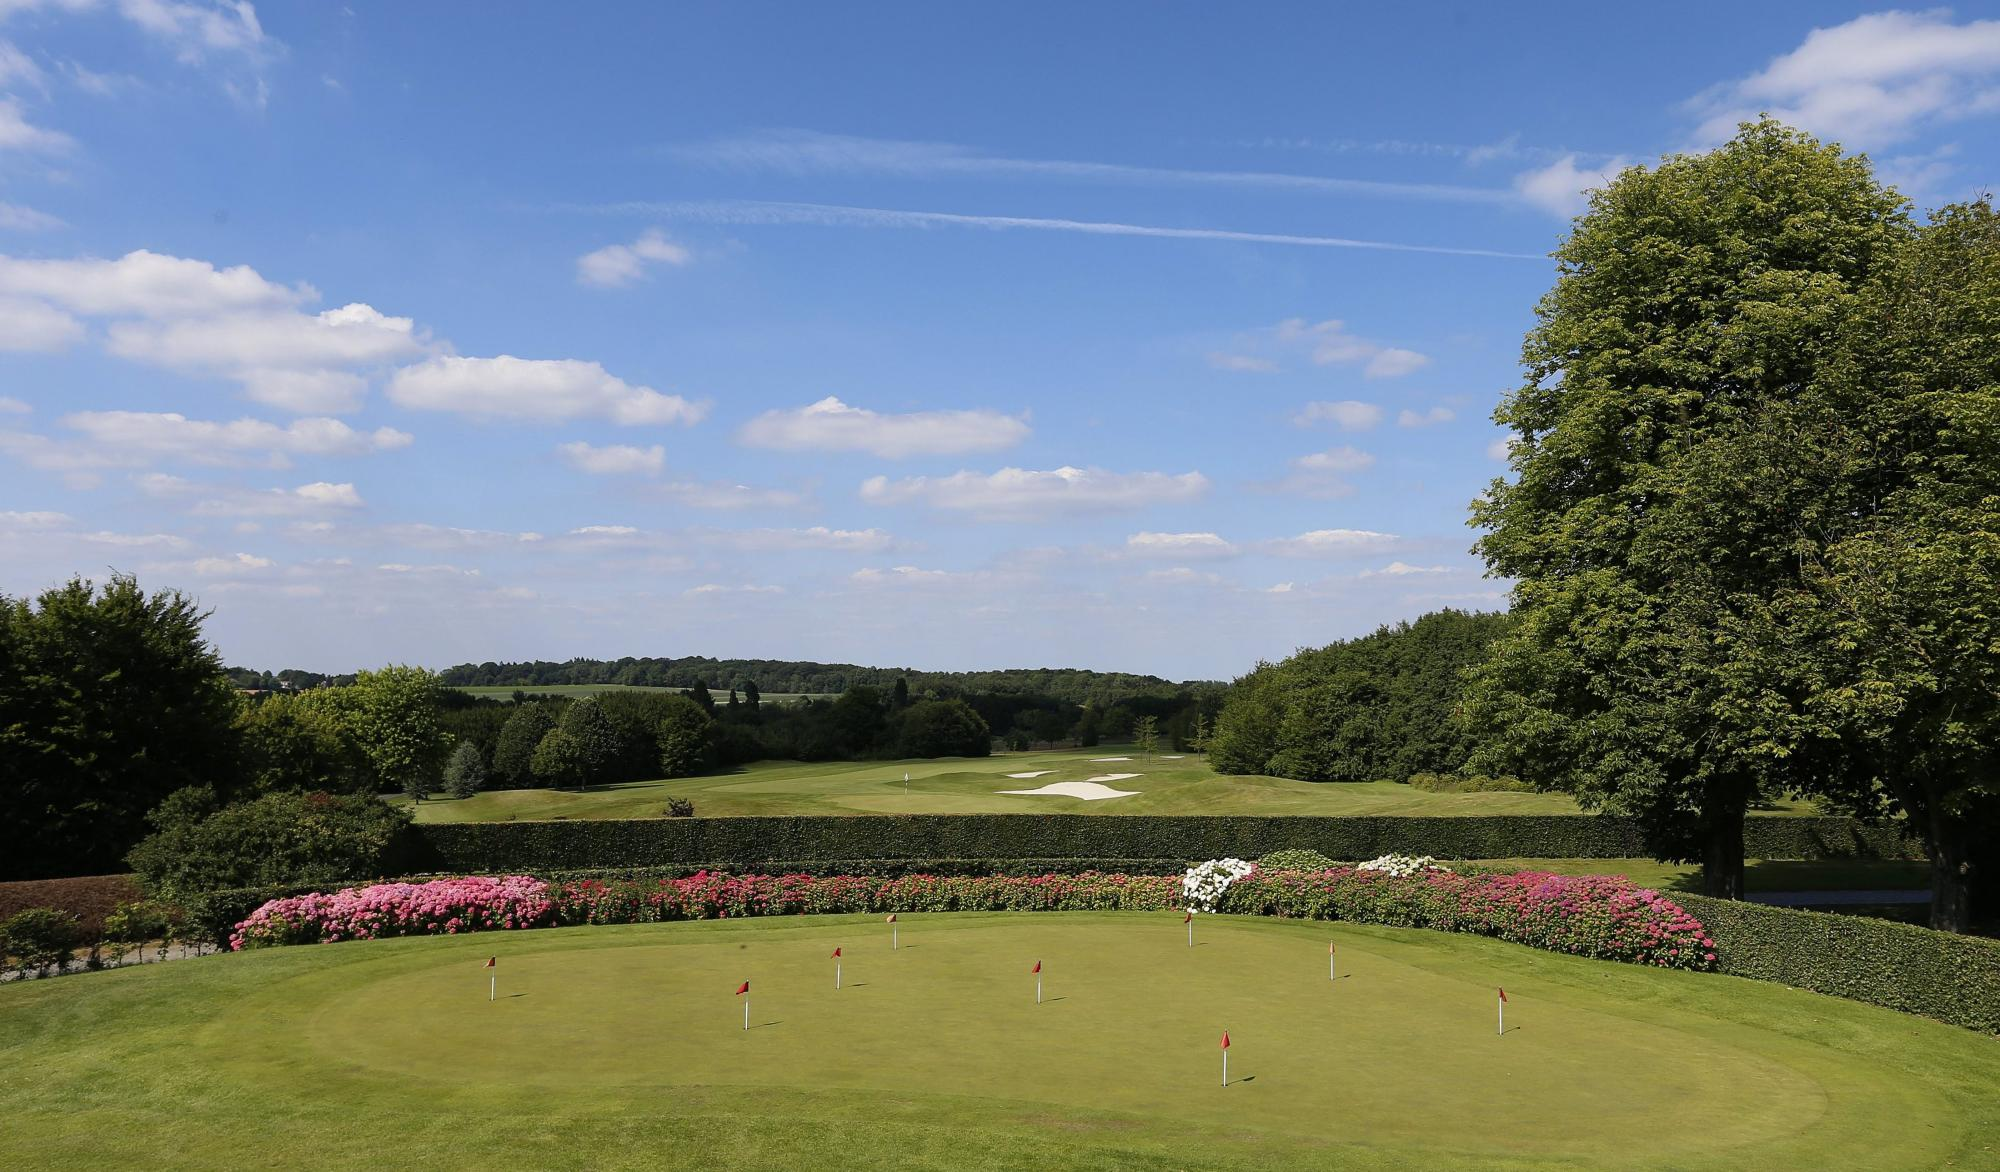 View Golf Club de Hulencourt's lovely golf course in amazing Brussels Waterloo & Mons.